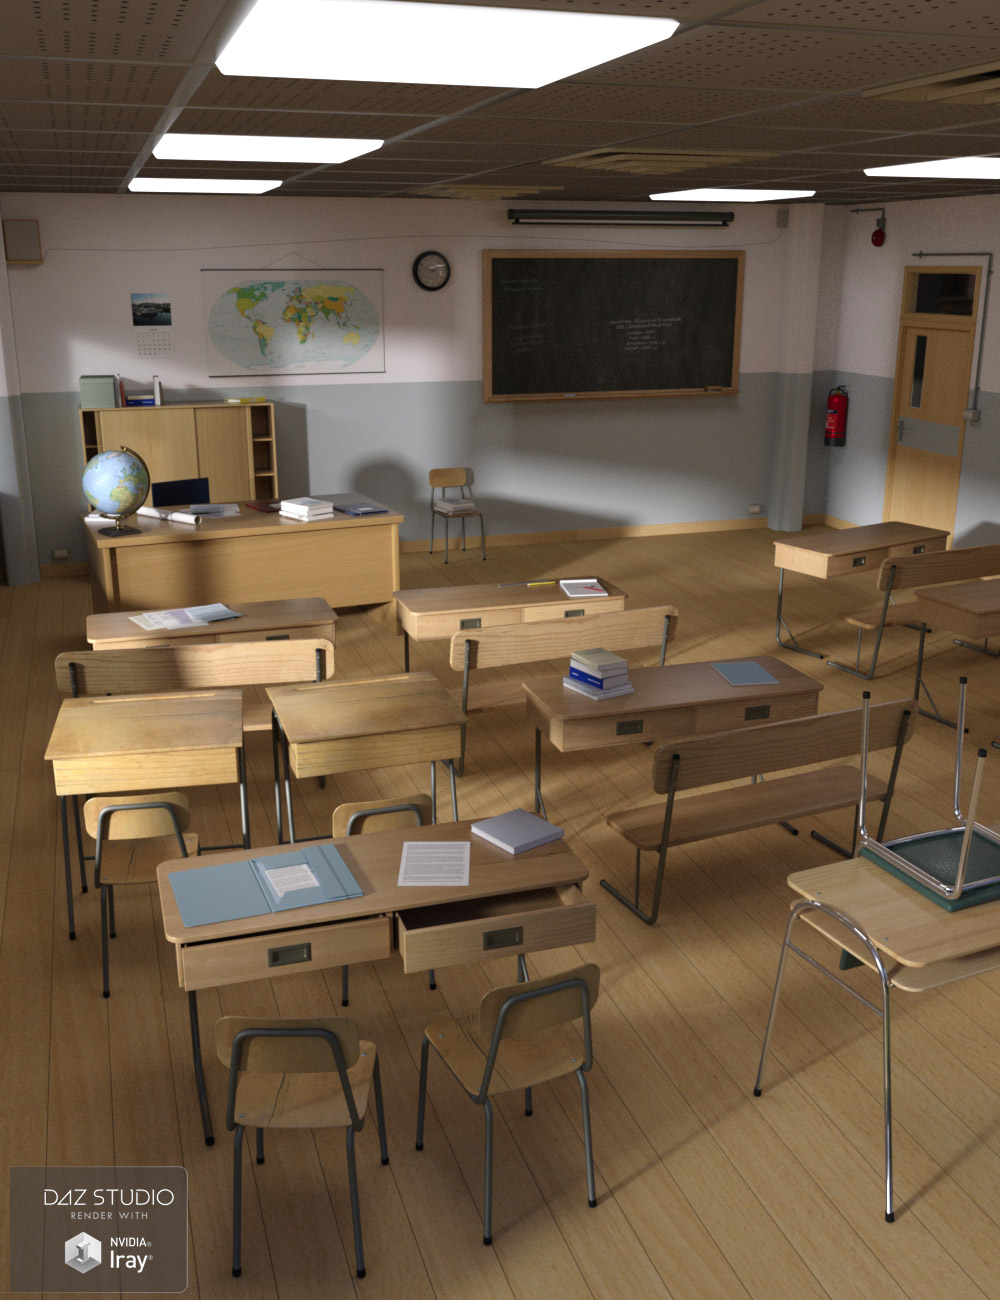 Interiors The Classroom by: maclean, 3D Models by Daz 3D